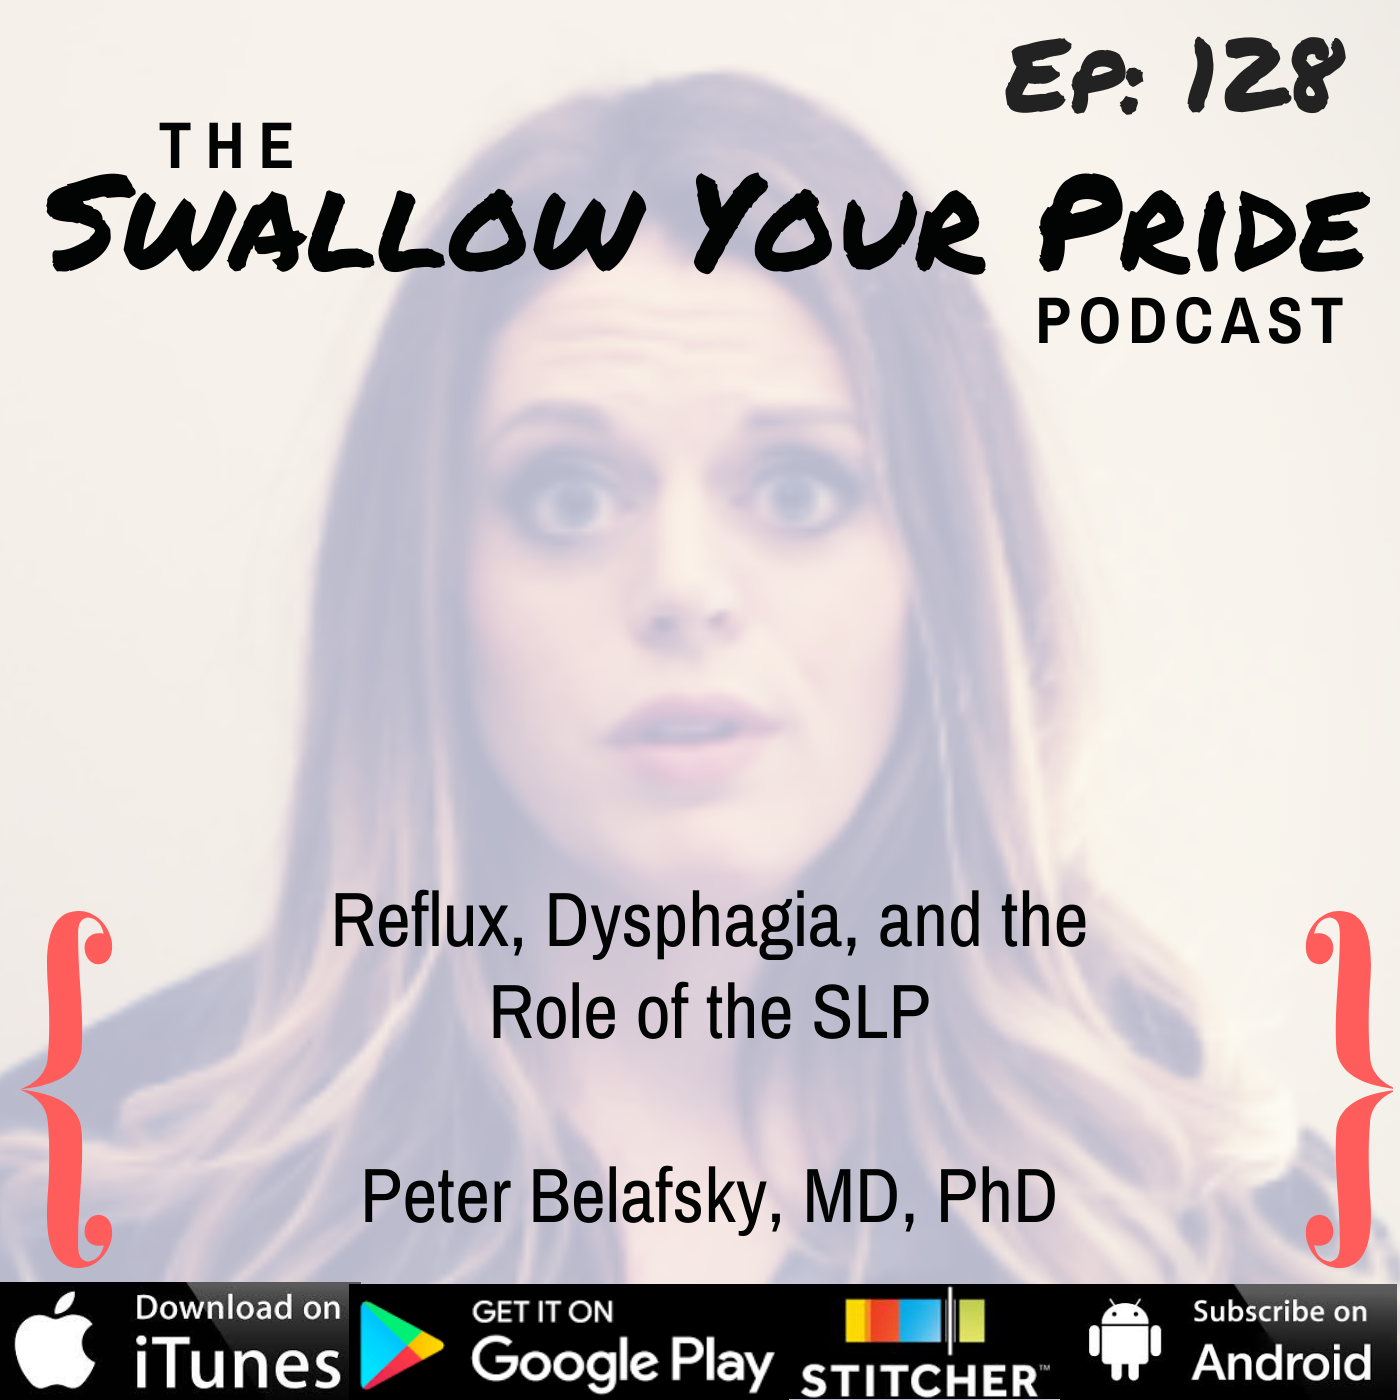 128 – Peter Belafsky, MD, PhD – Reflux, Dysphagia, and the Role of the SLP